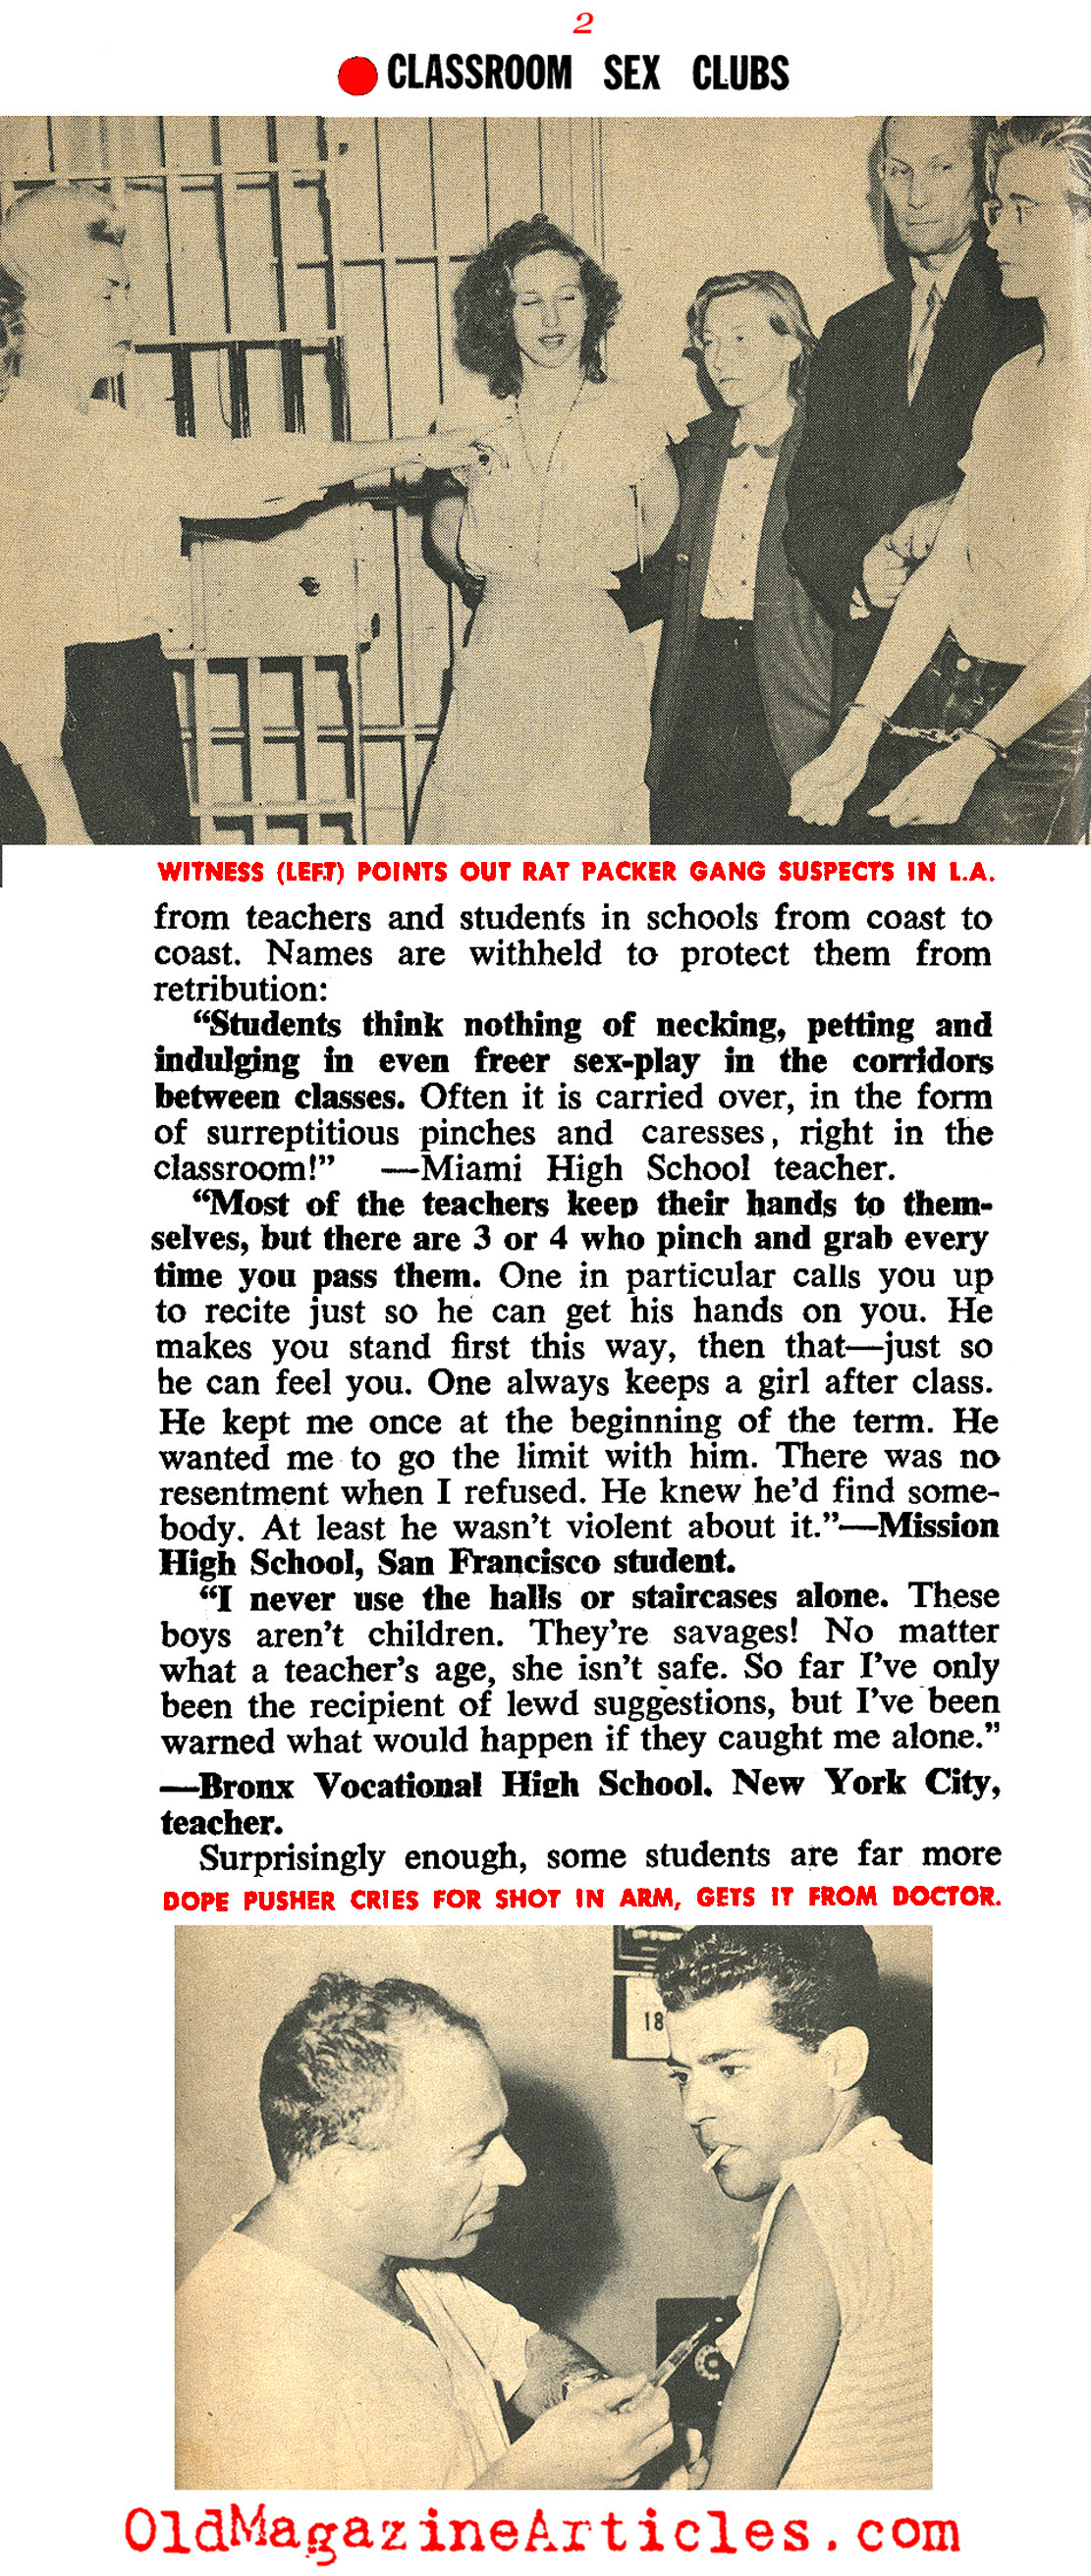 Delinquency and Other Shenanigans (Quick Magazine, 1955)